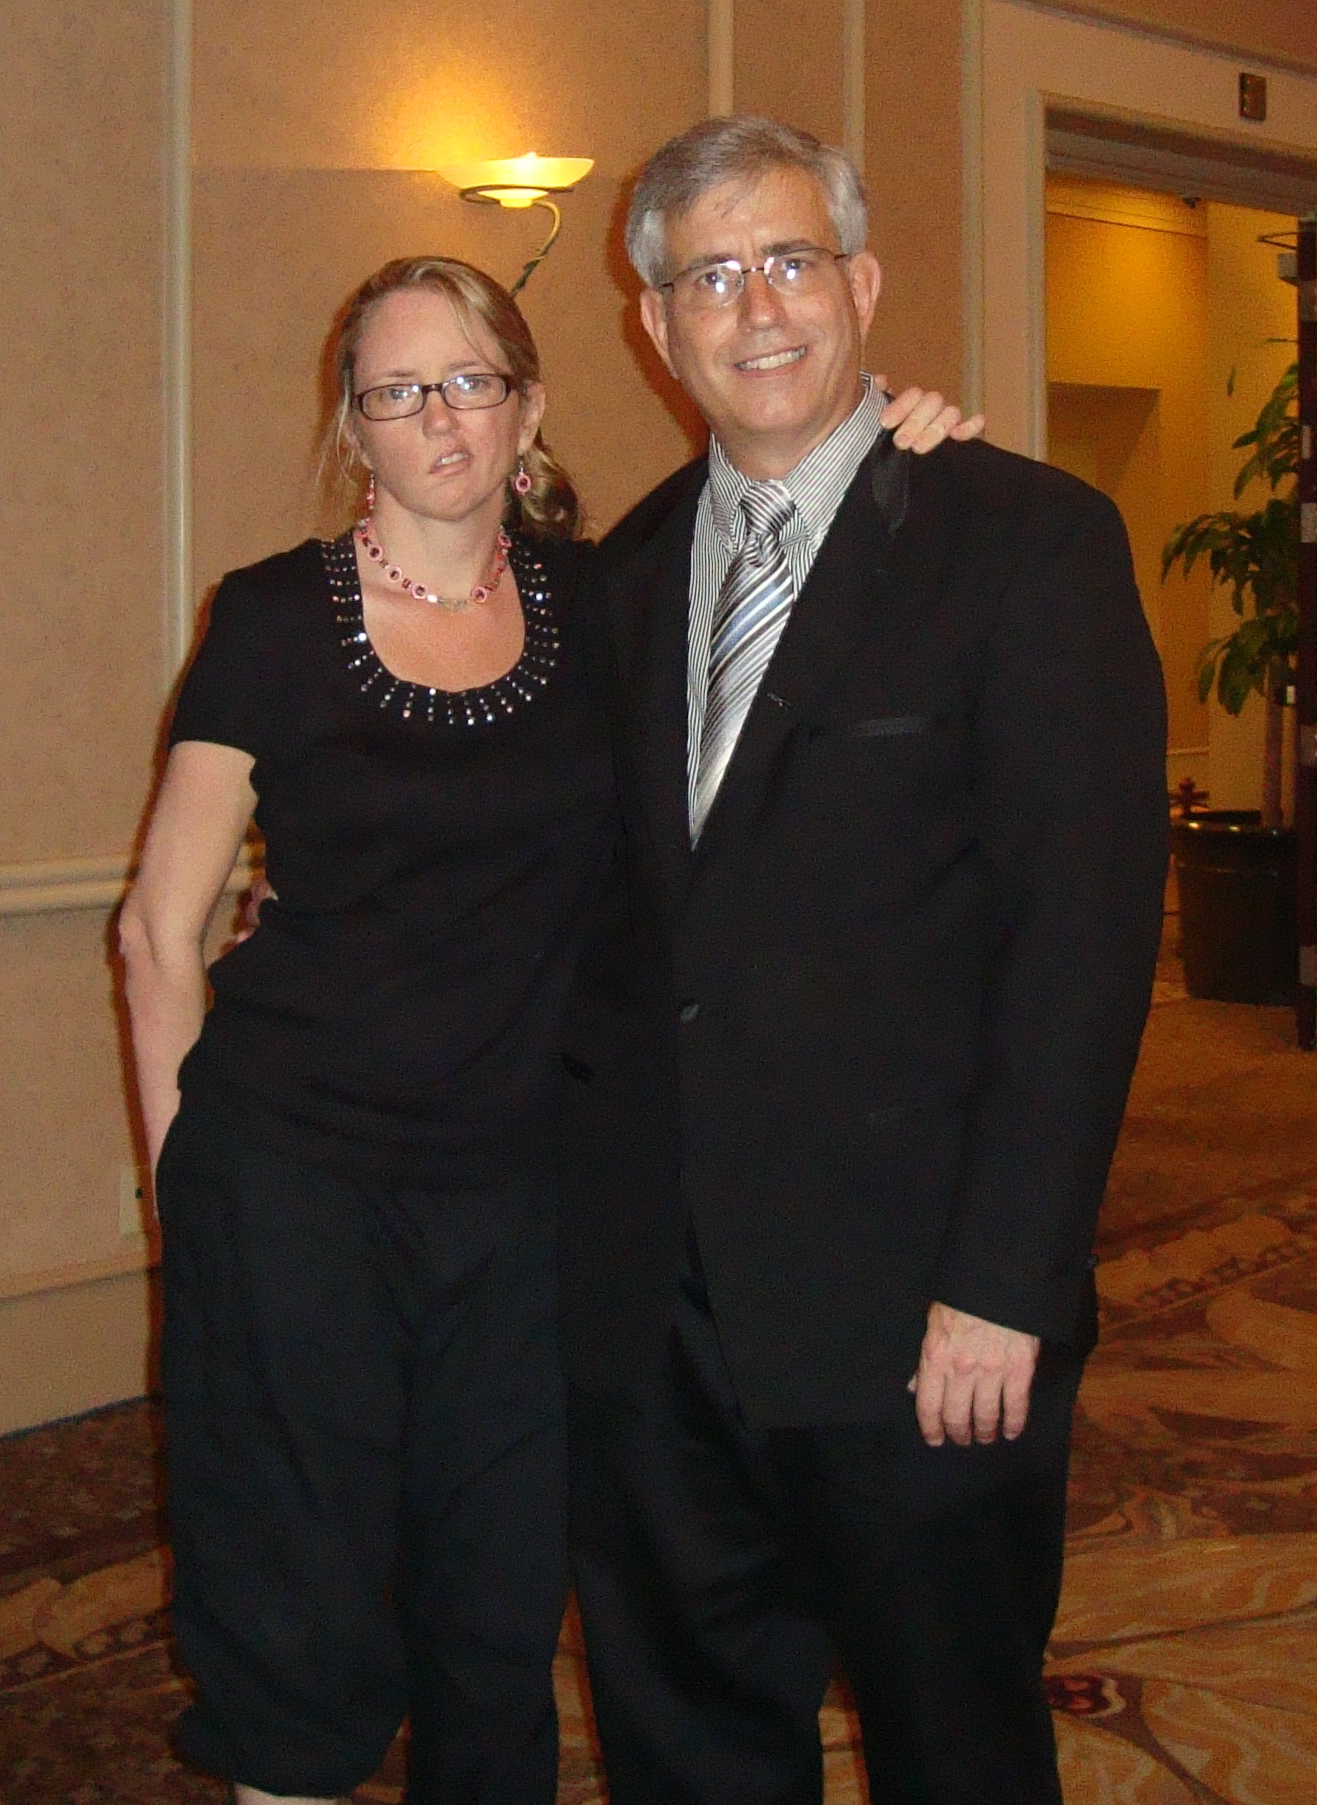 Cindy Reese dressed up in black pantsuit standing on left arm in arm with Bill Reese in suit standing on right